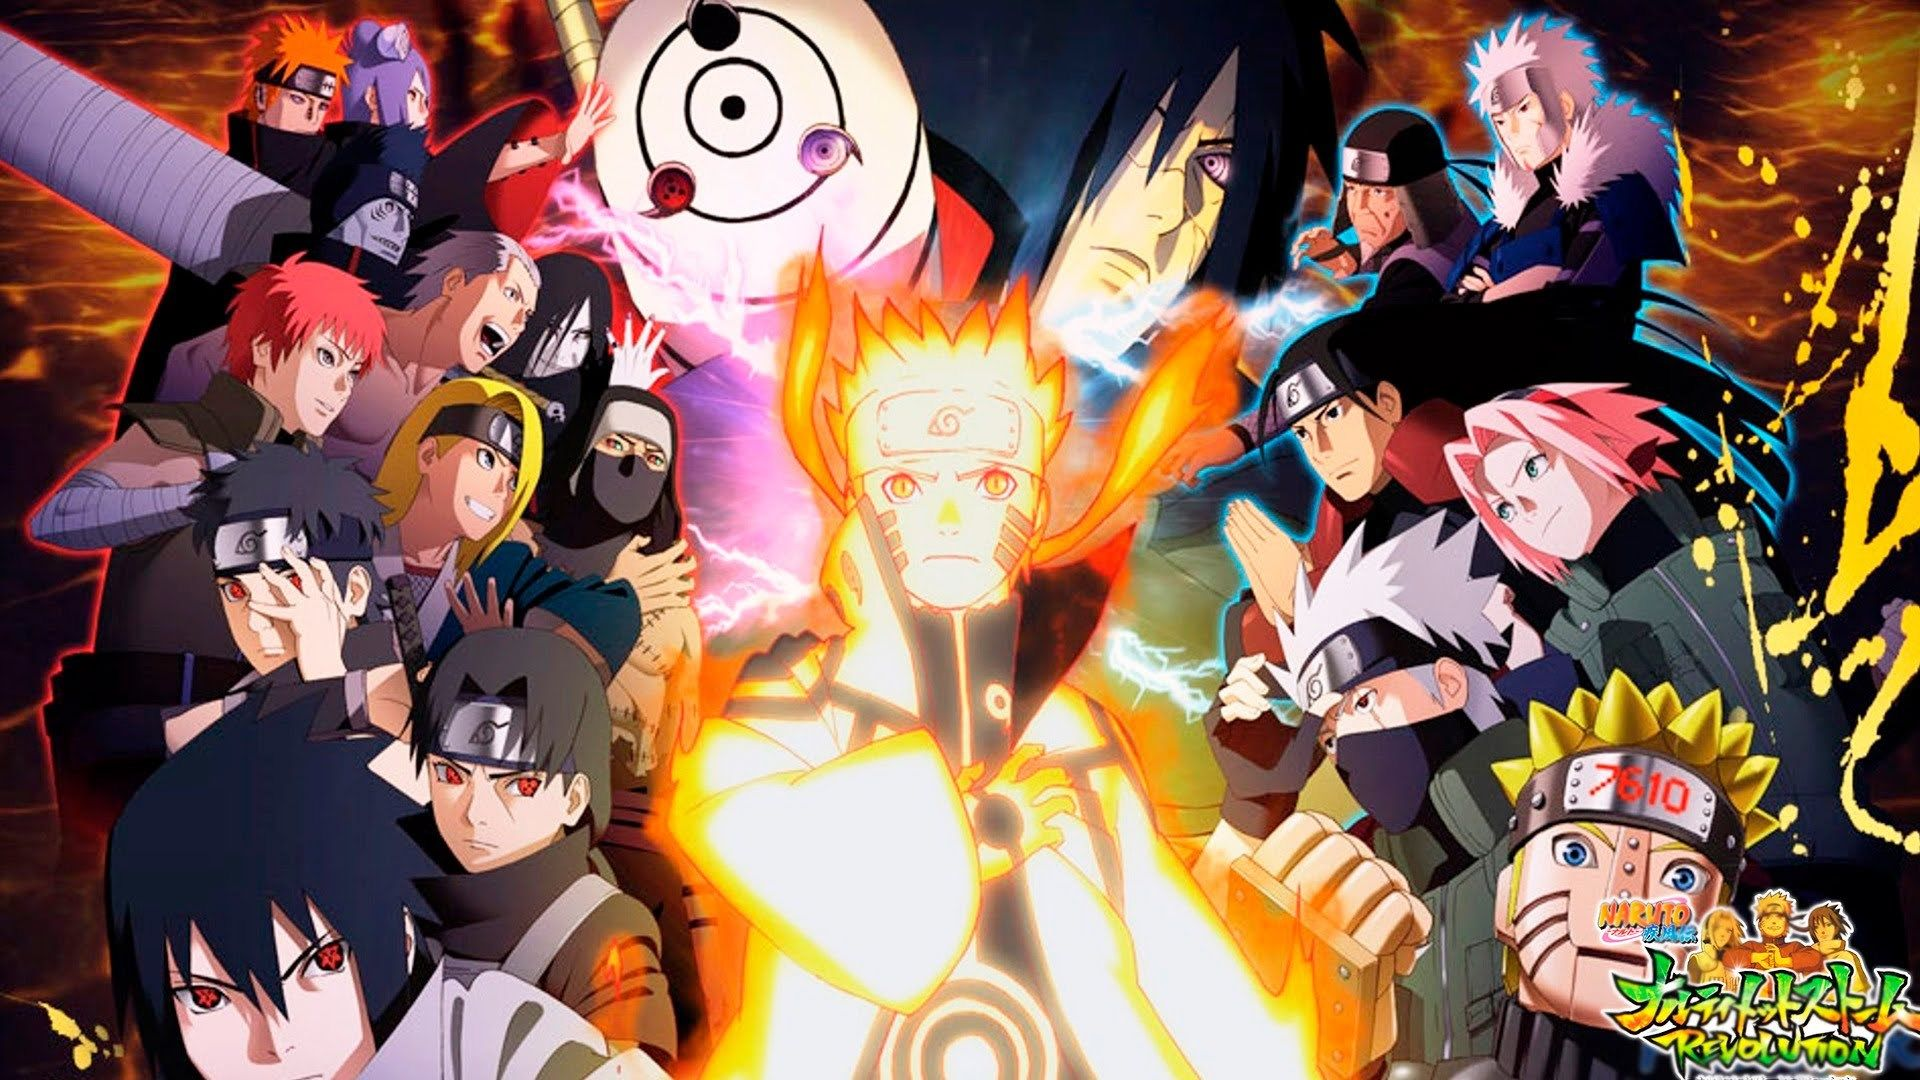 1920x1080 Naruto Free Computer Wallpaper Download Jpg 421 Kb